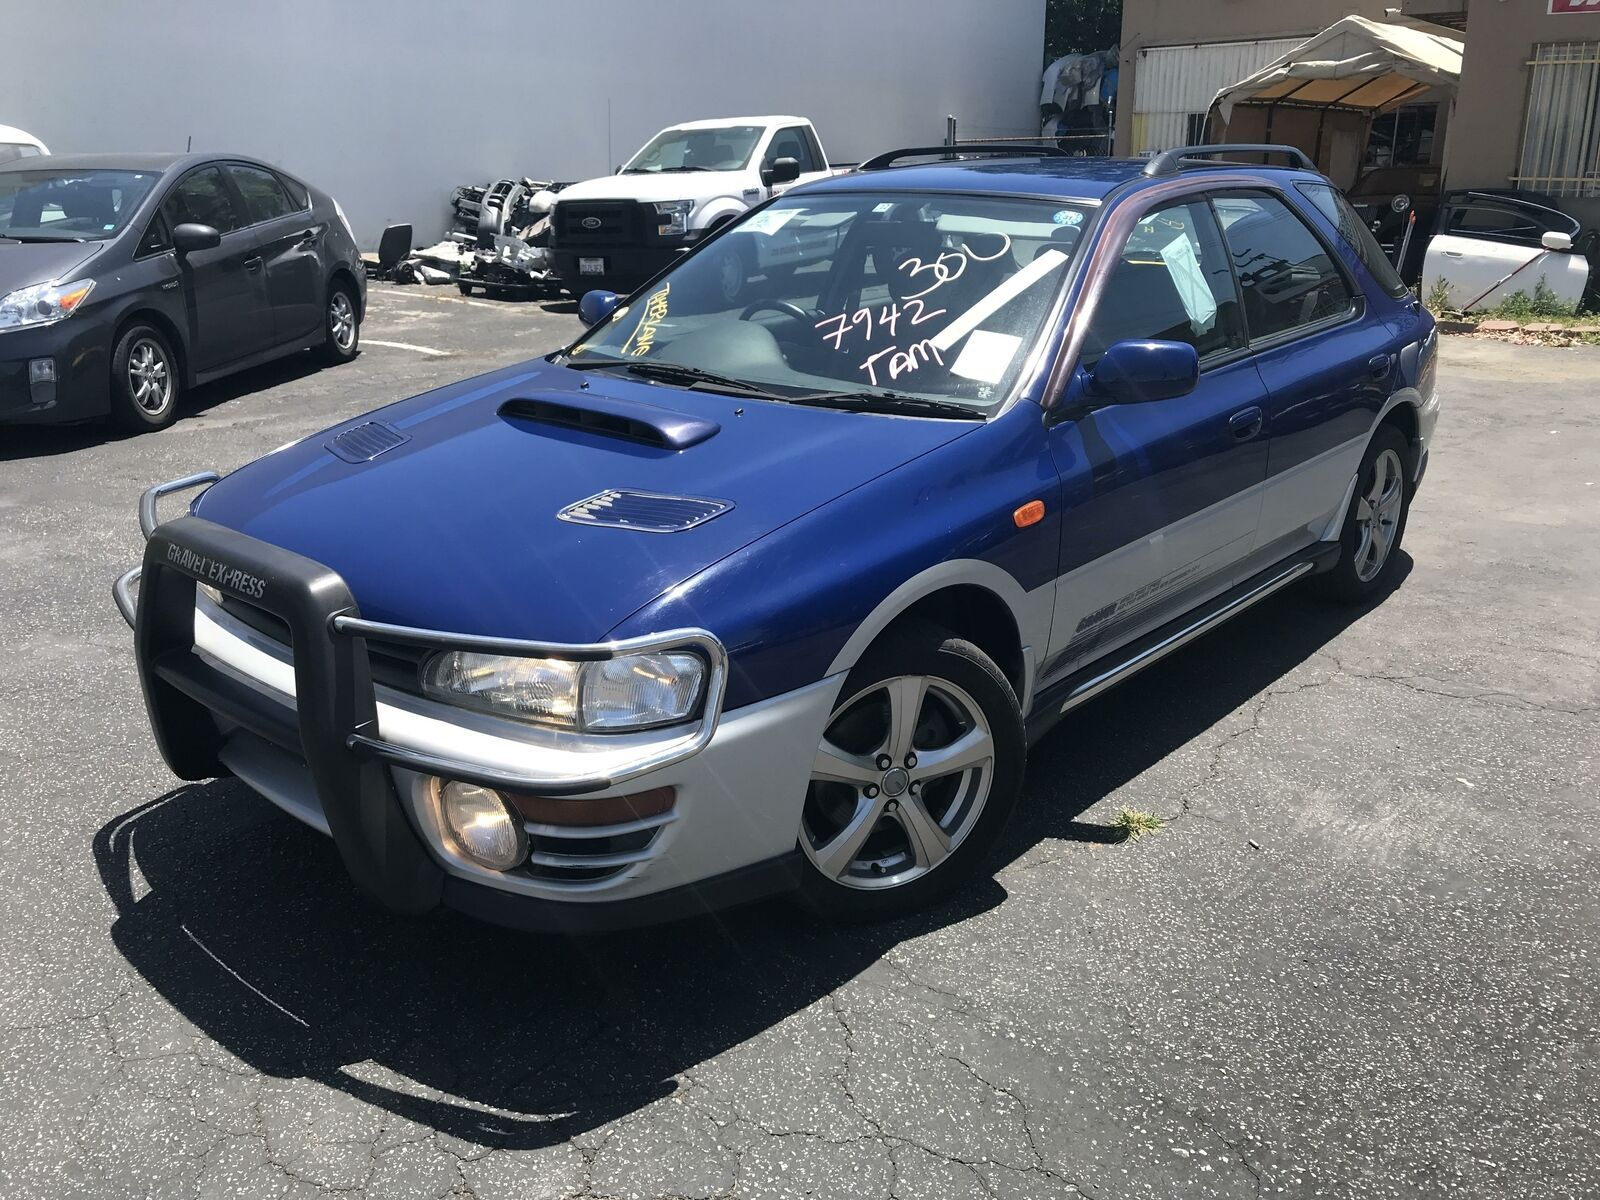 Subaru Gravel Express Was A Crossover Before Crossovers